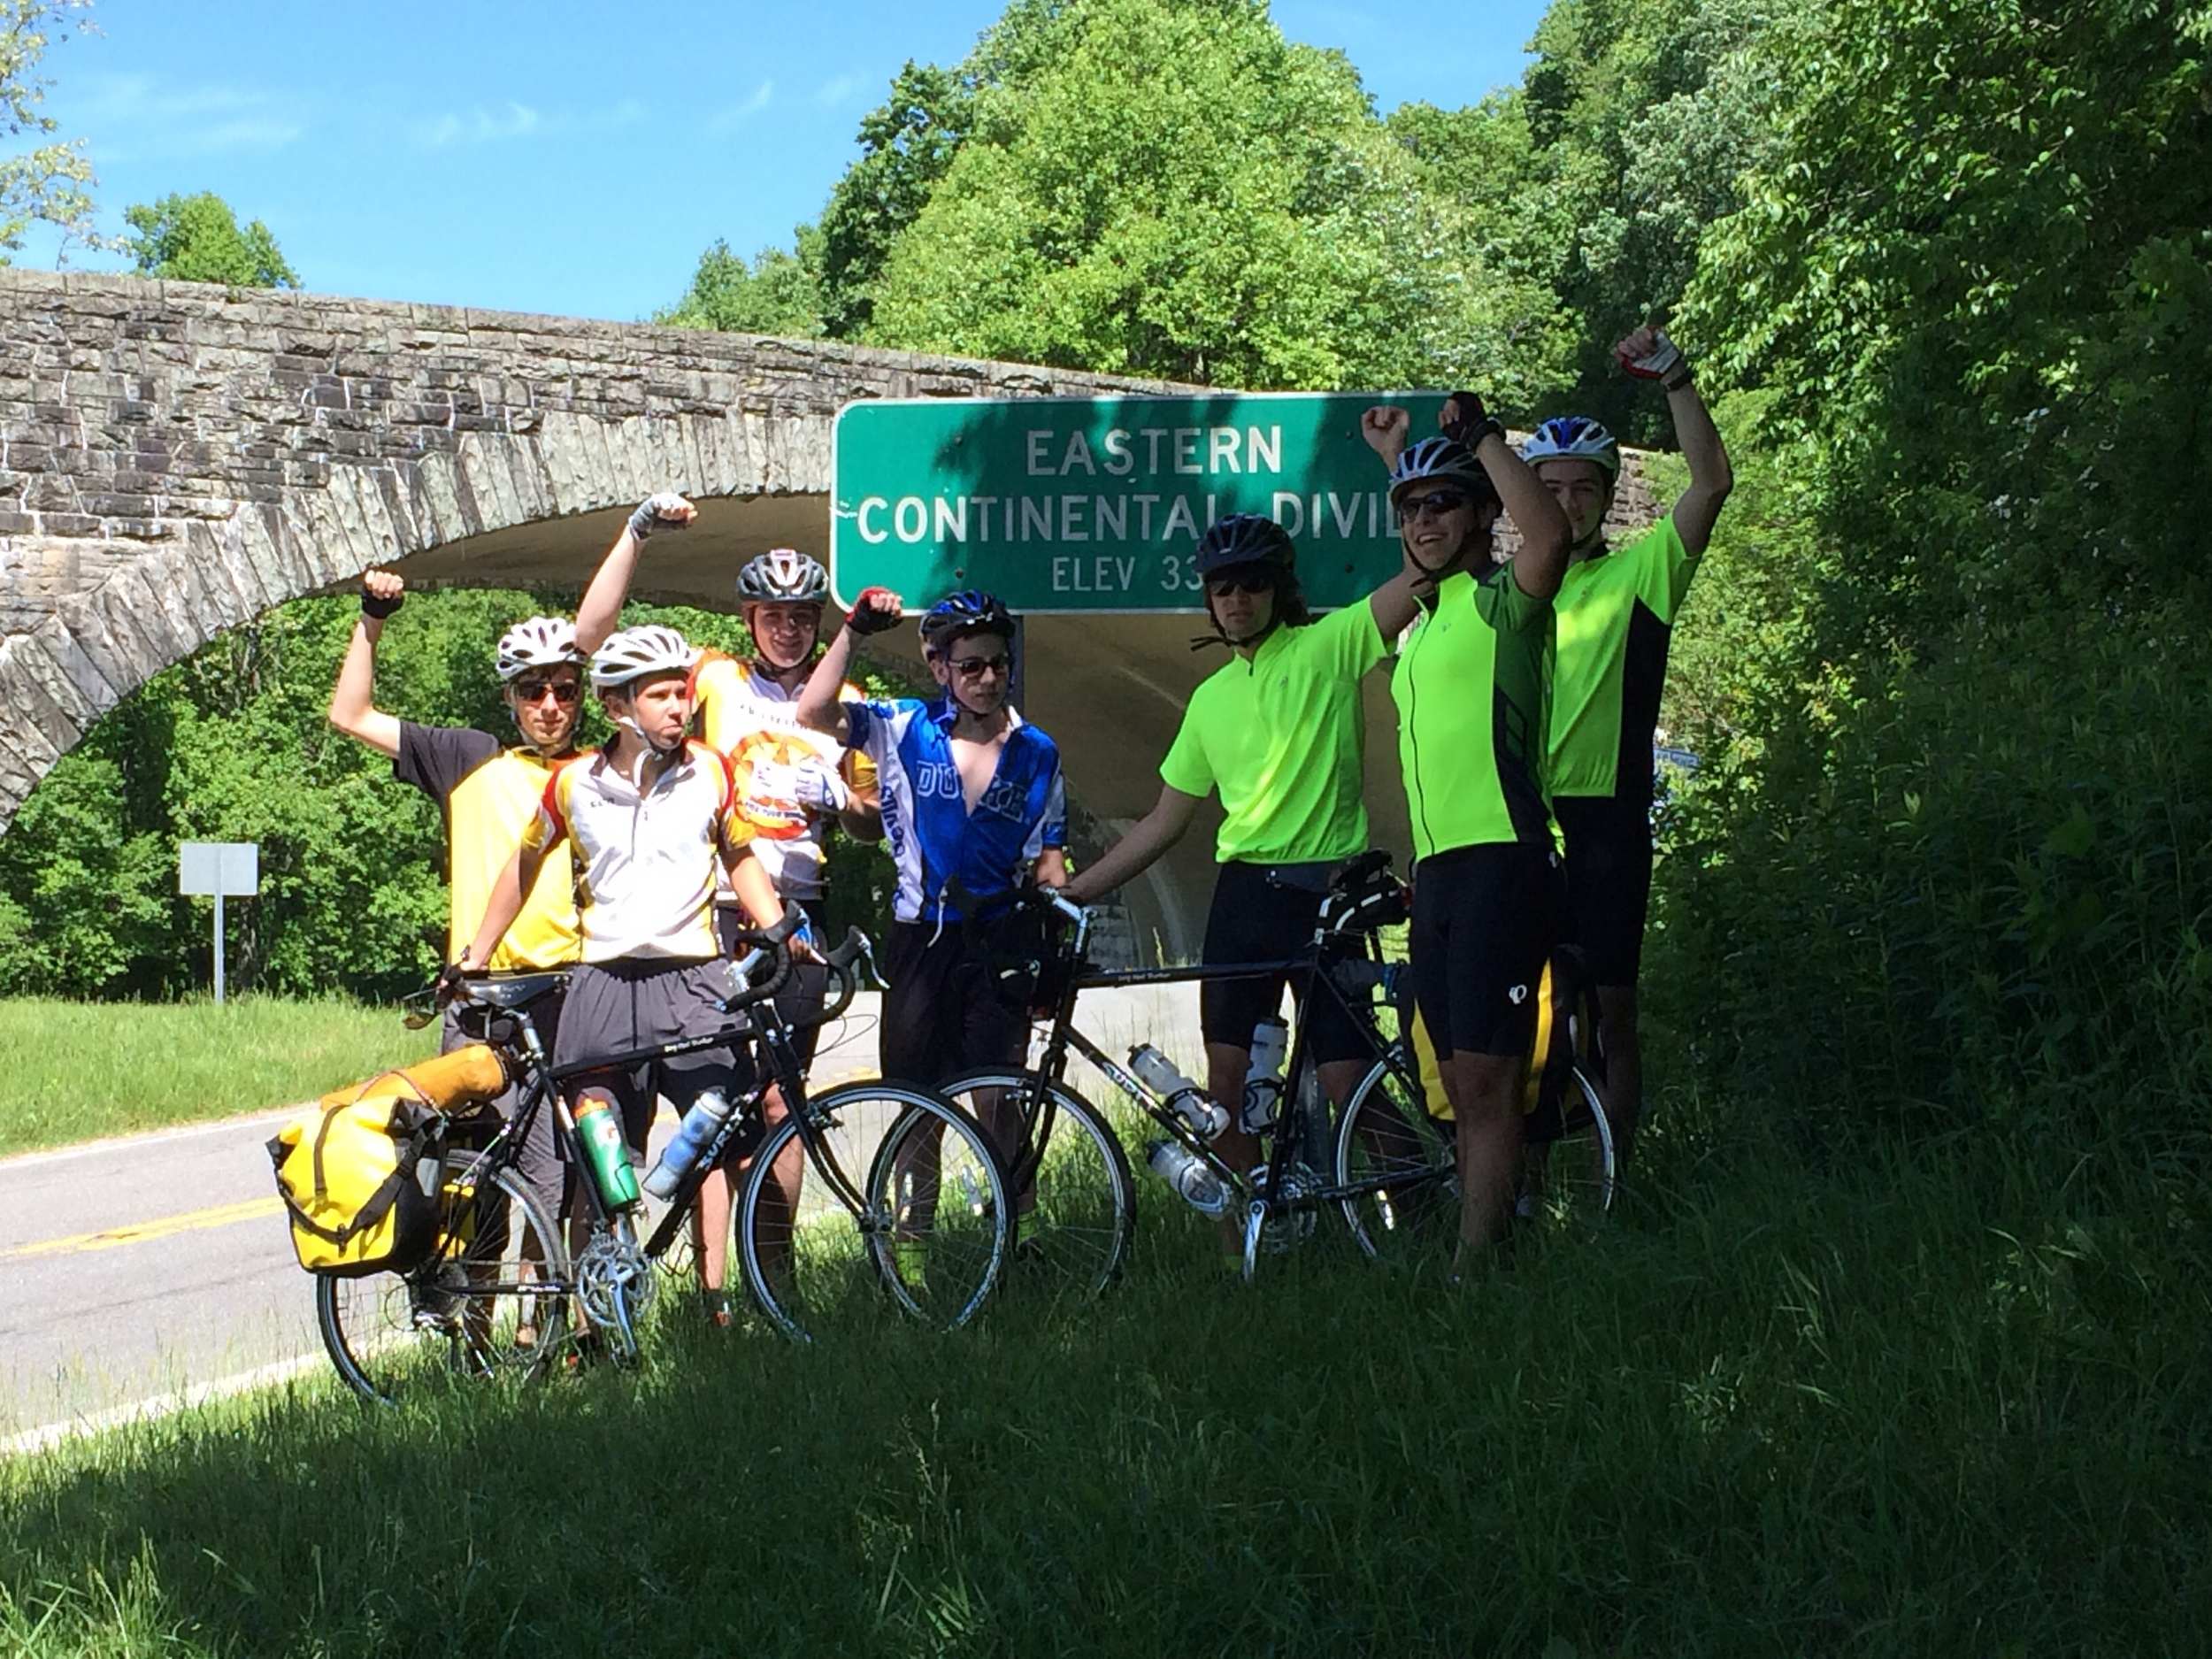 The crew celebrates their arrival to the eastern continental divide.